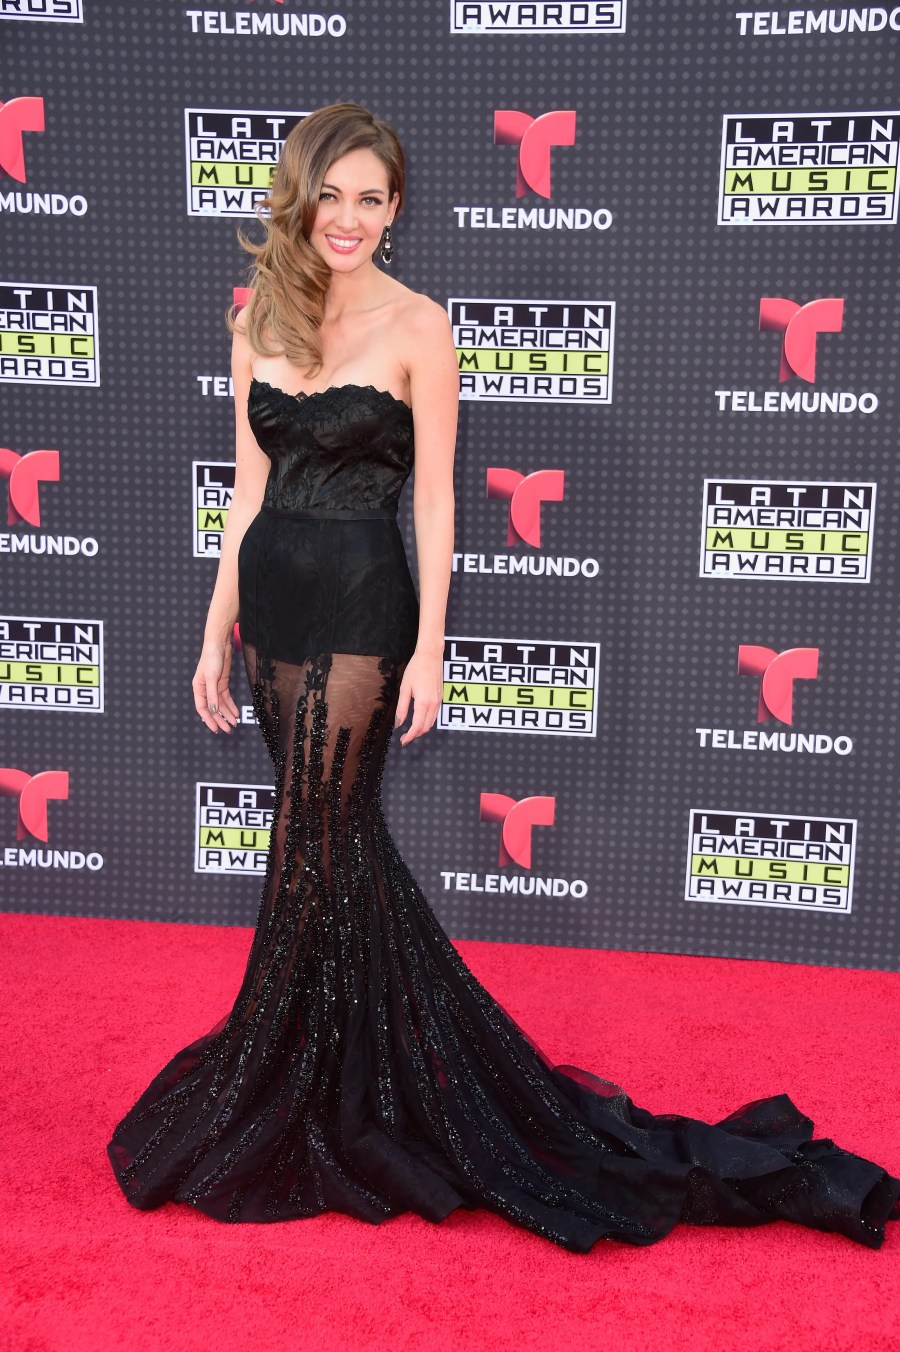 HOLLYWOOD, CA - OCTOBER 08: Patricia Zavala attends Telemundo's Latin American Music Awards at the Dolby Theatre on October 8, 2015 in Hollywood, California. Frazer Harrison/Getty Images/AFP